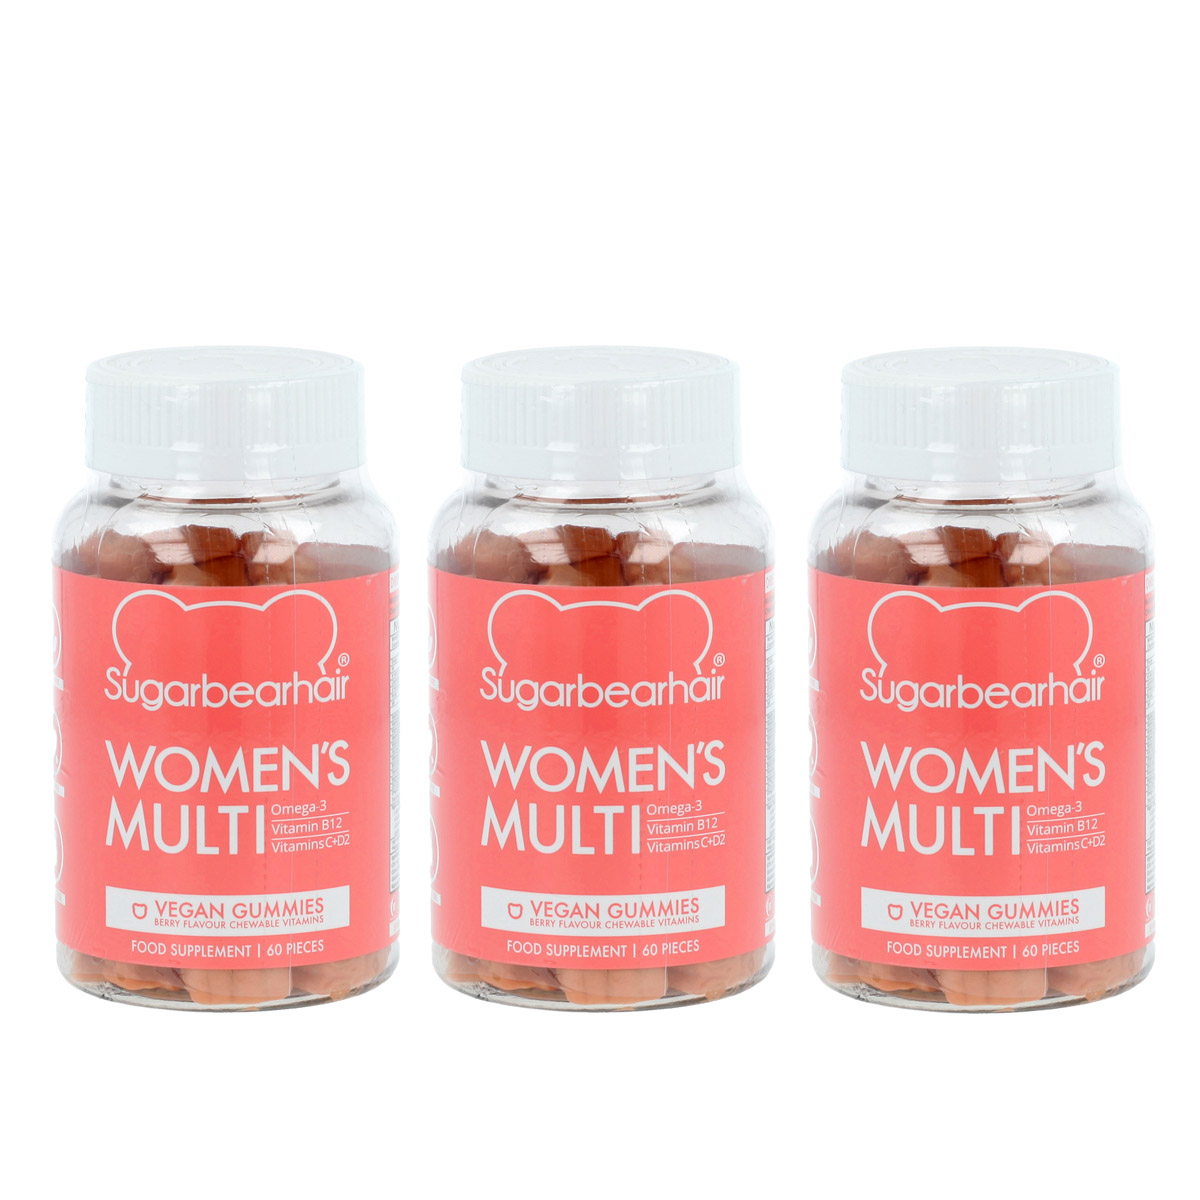 SugarBearHair Women's Multi Vitamins 3 x 60 St. 18592